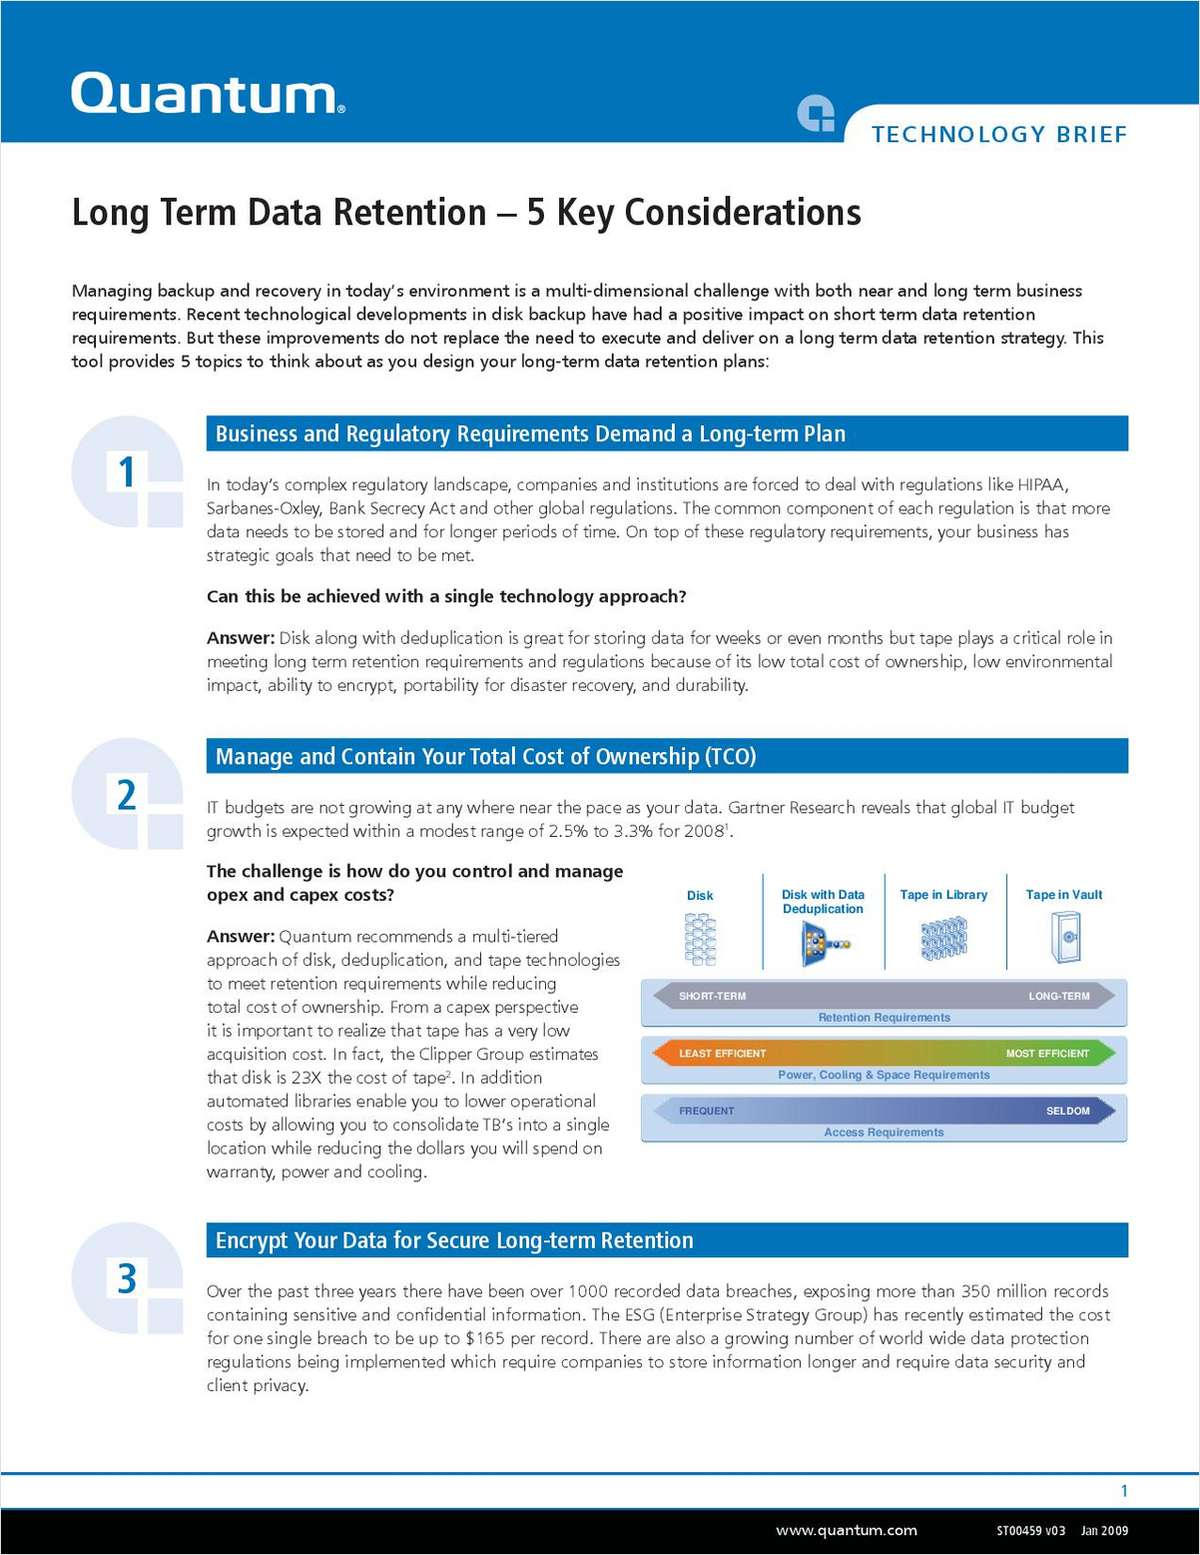 Long Term Data Retention: 5 Key Considerations